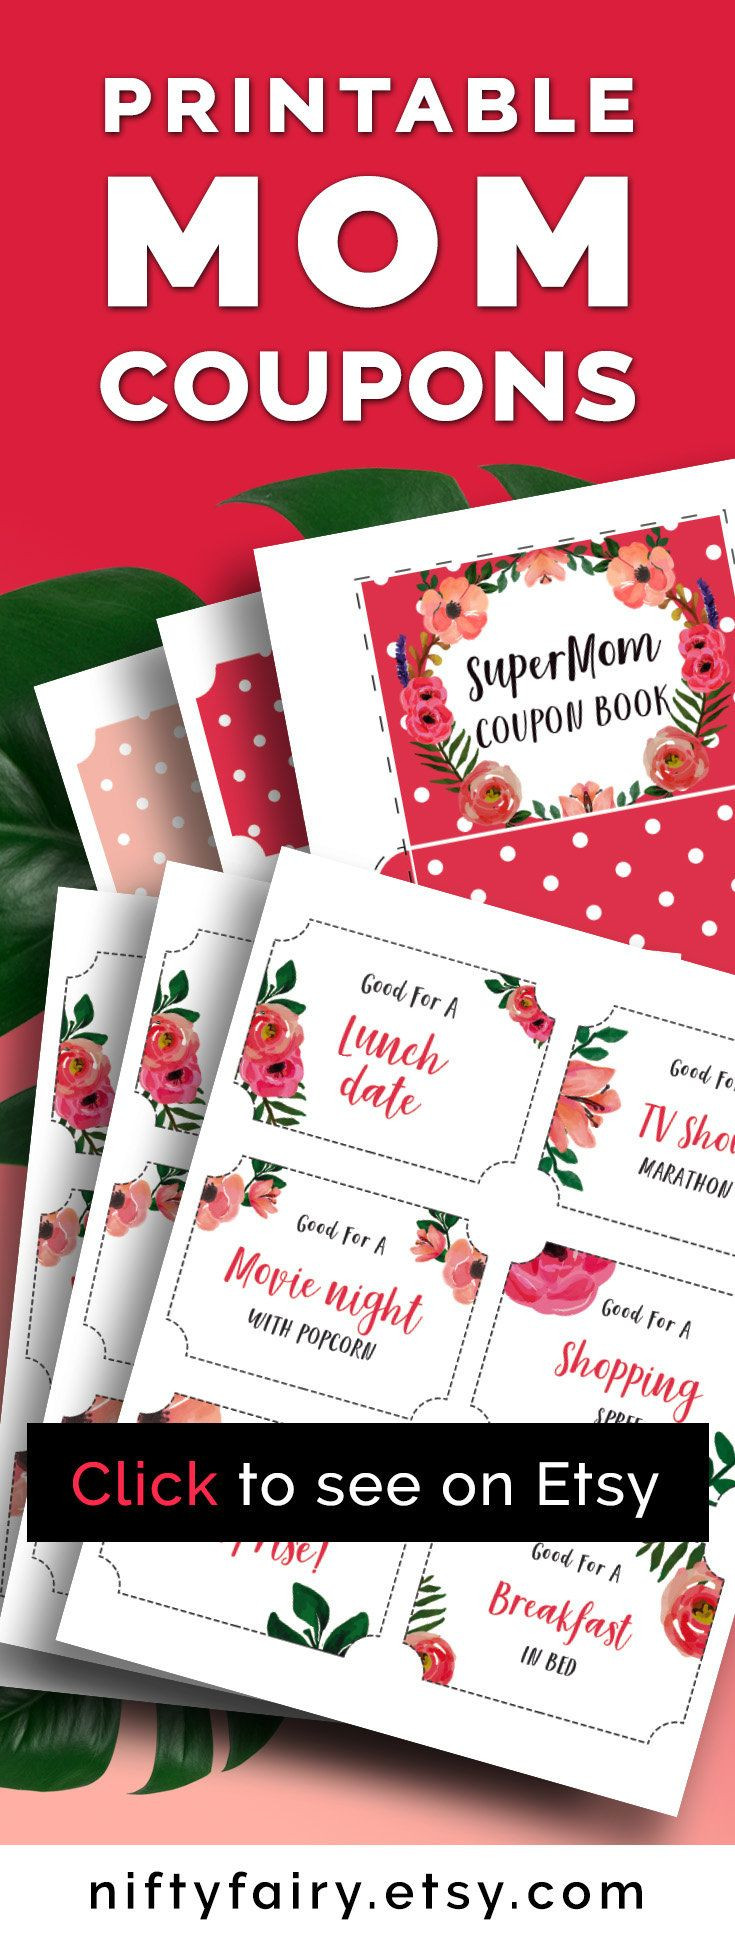 Last Minute Birthday Gifts For Mom  Mother s Day Coupon Book for Mom Last Minute Gift for Mum